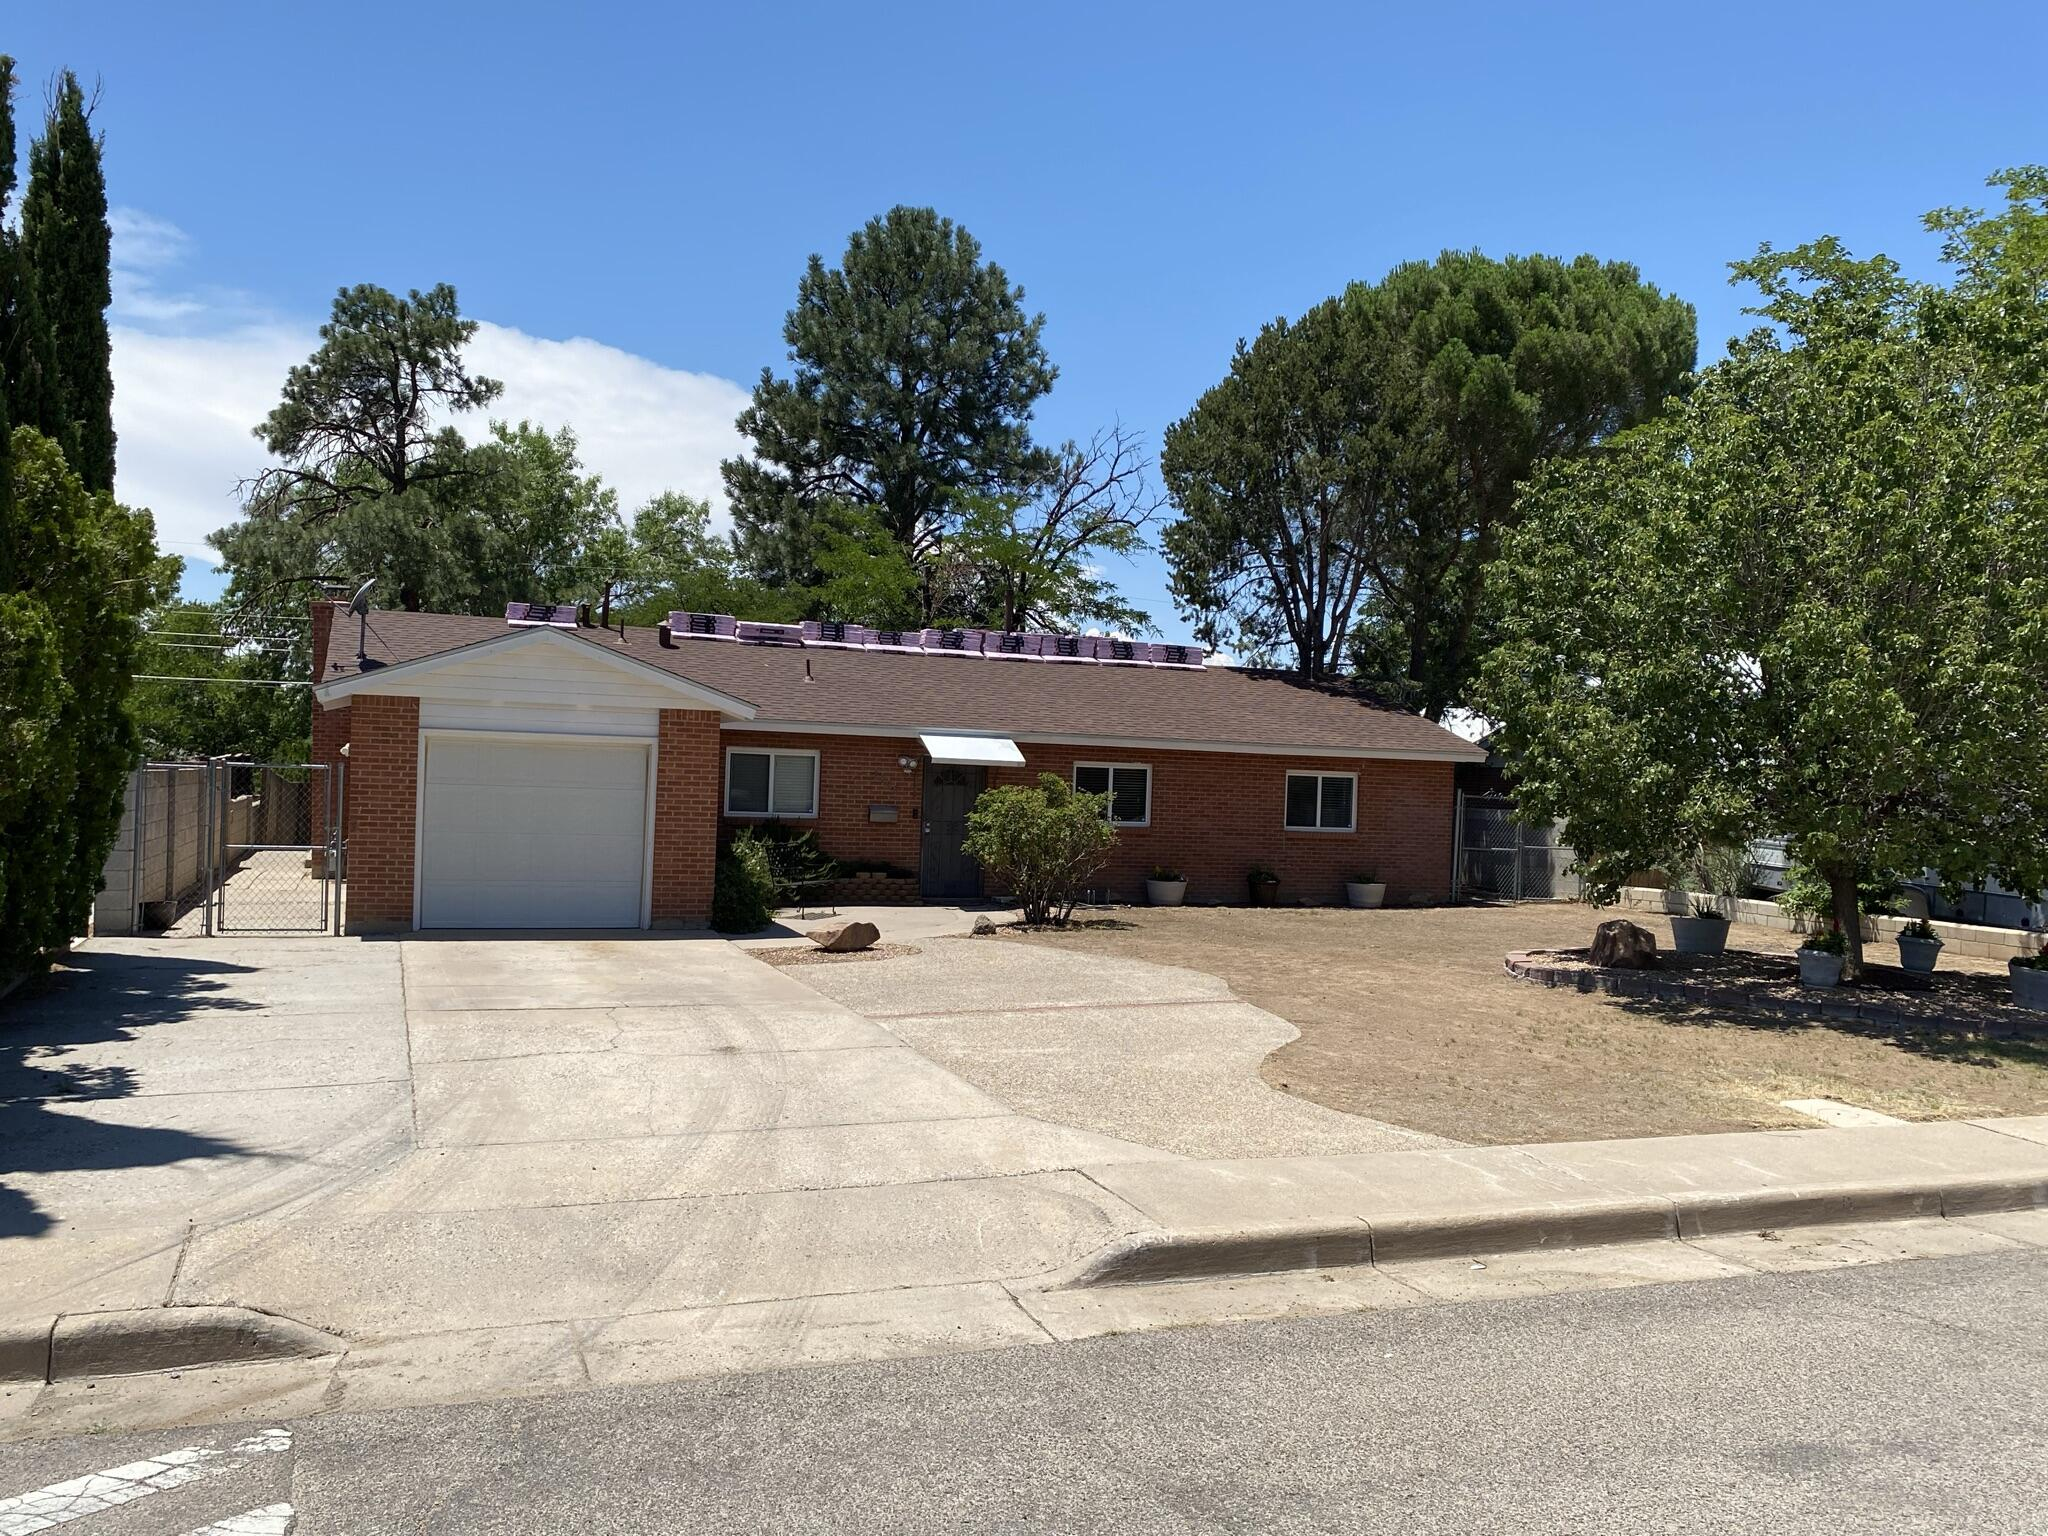 Updated and upgraded home in the Sandia High school district. This home just had the roof replaced 7.10.21. The electric drop and box has been upgraded in April 2021. The hot water heater is from 2015. The home has newer flooring through out home with upgraded tile wet areas and shower surrounds. The home has a master cool unit as well as a ac unit in the extension. This beautiful home has a stone fireplace in the living room with a pellet stove in the extension. All appliances and window coverings convey.